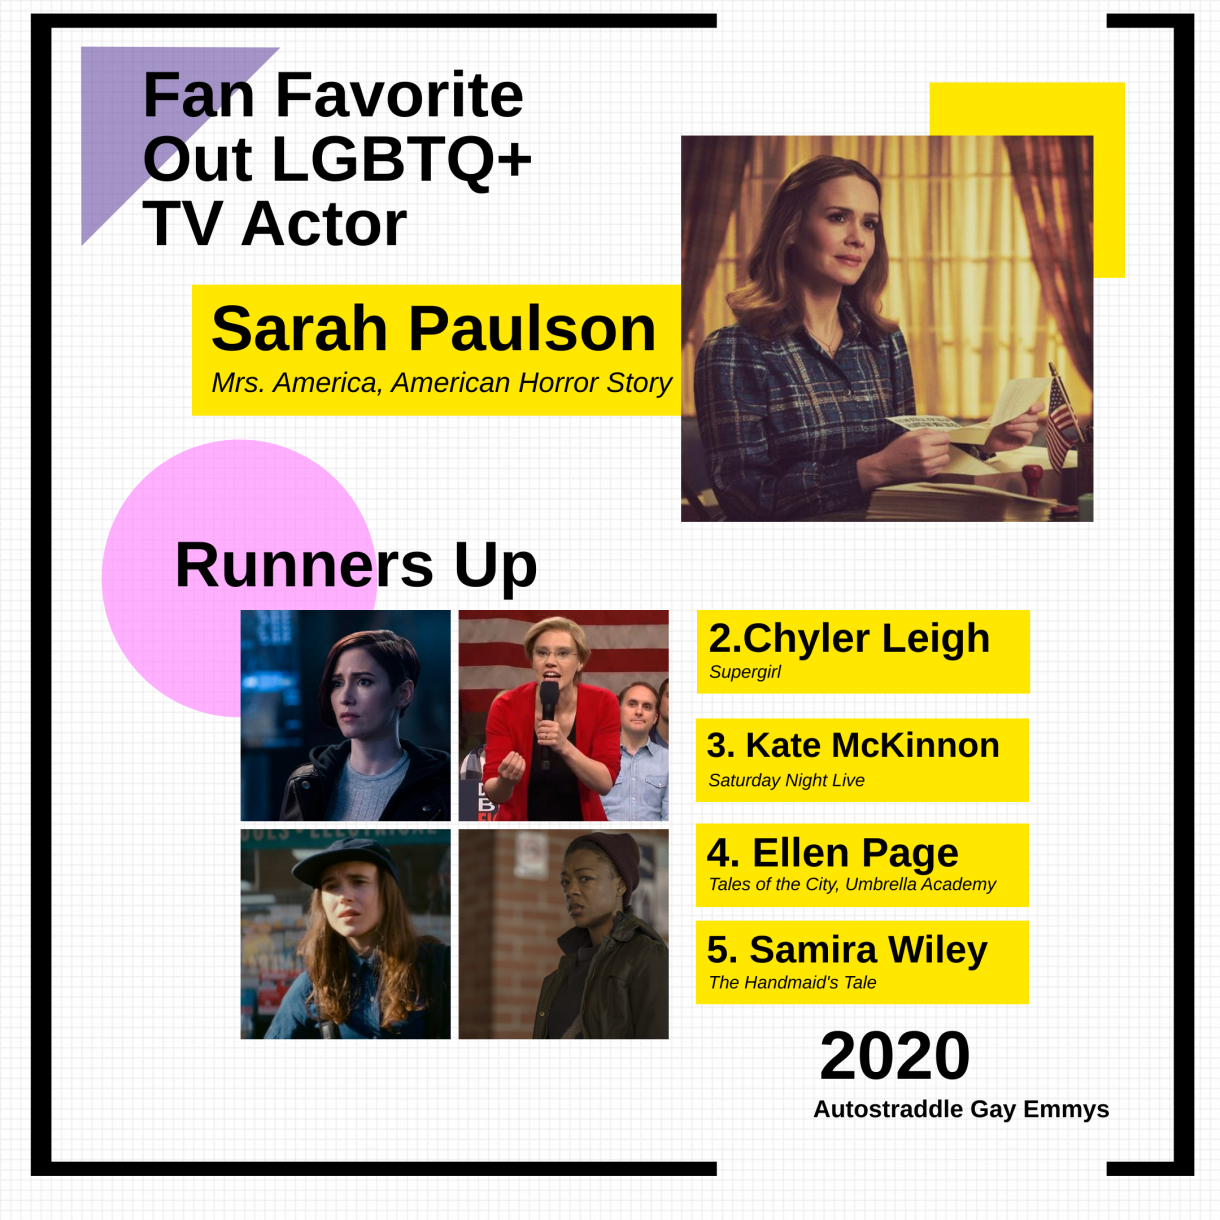 Graphic for Fan Favorite Out LGBTQ+ Actor: 1. Sarah Paulson, 2. Chyler Leigh, 3. Kate McKinnon, 4. Ellen Page, 5. Samira Wiley